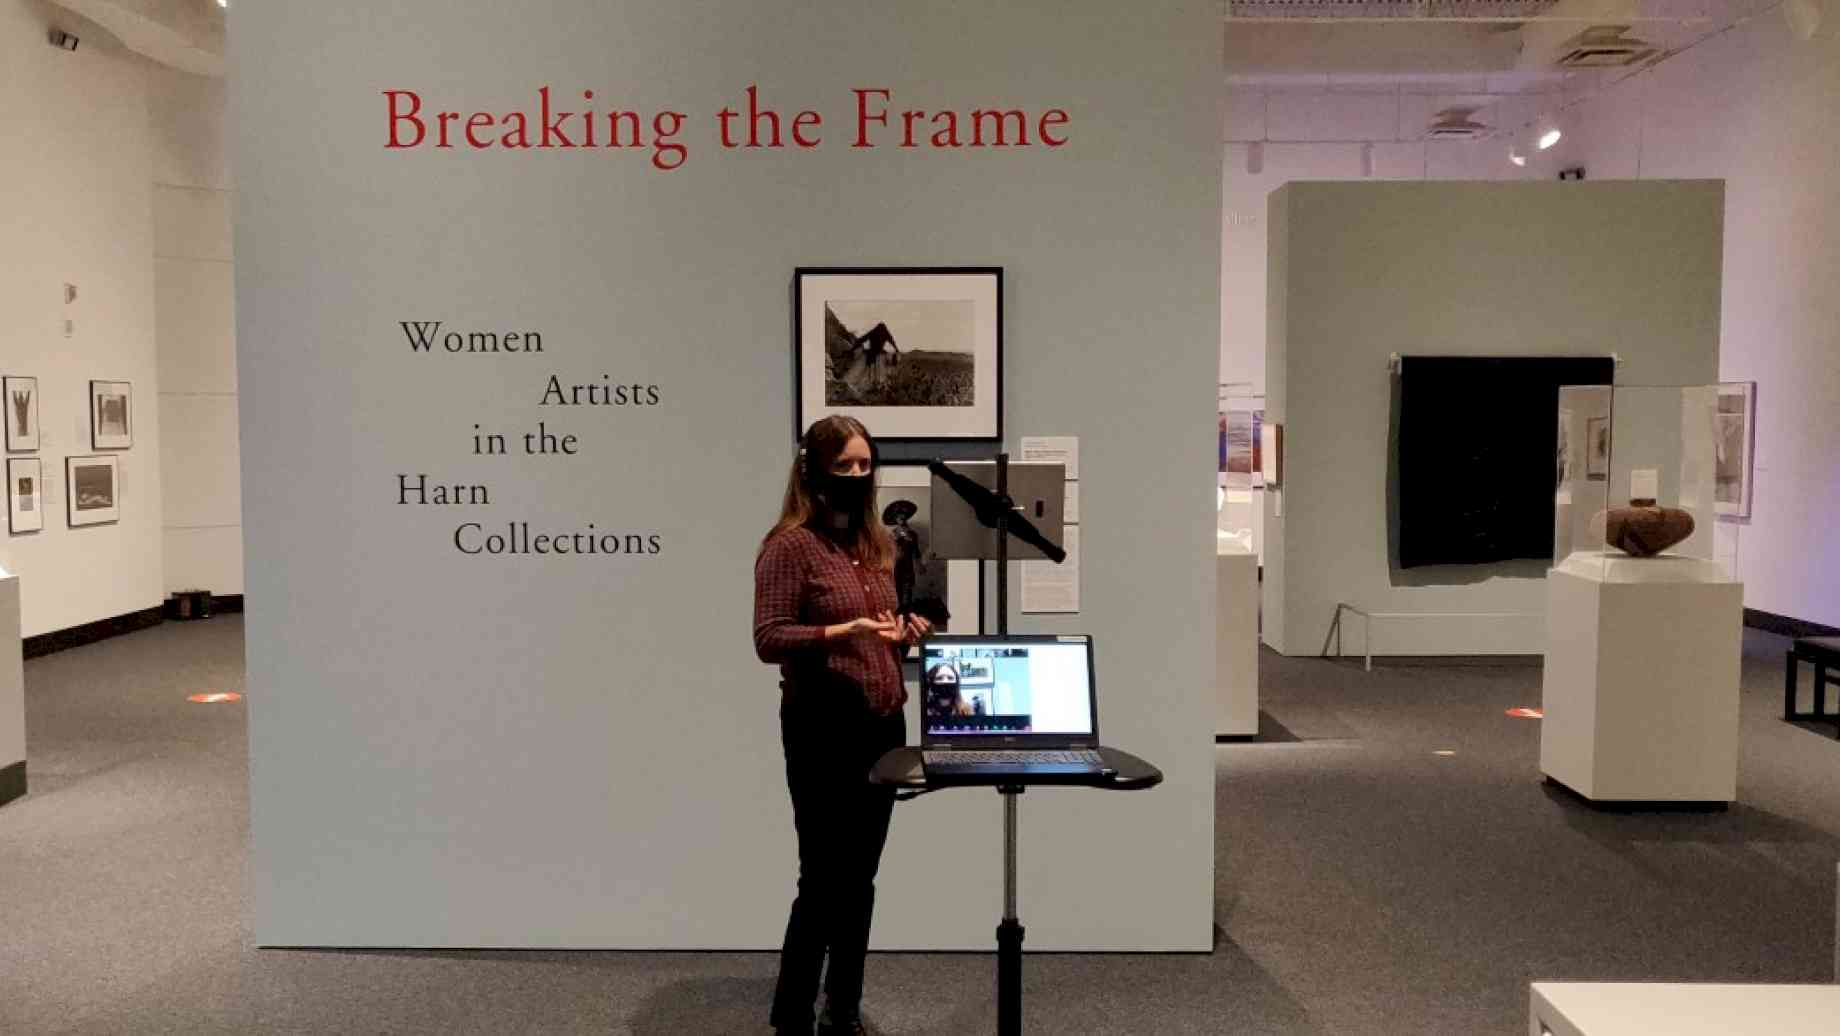 Professor Stanfield-Mazzi teaches a virtual class from the Harn Museum of Art, Fall 2020